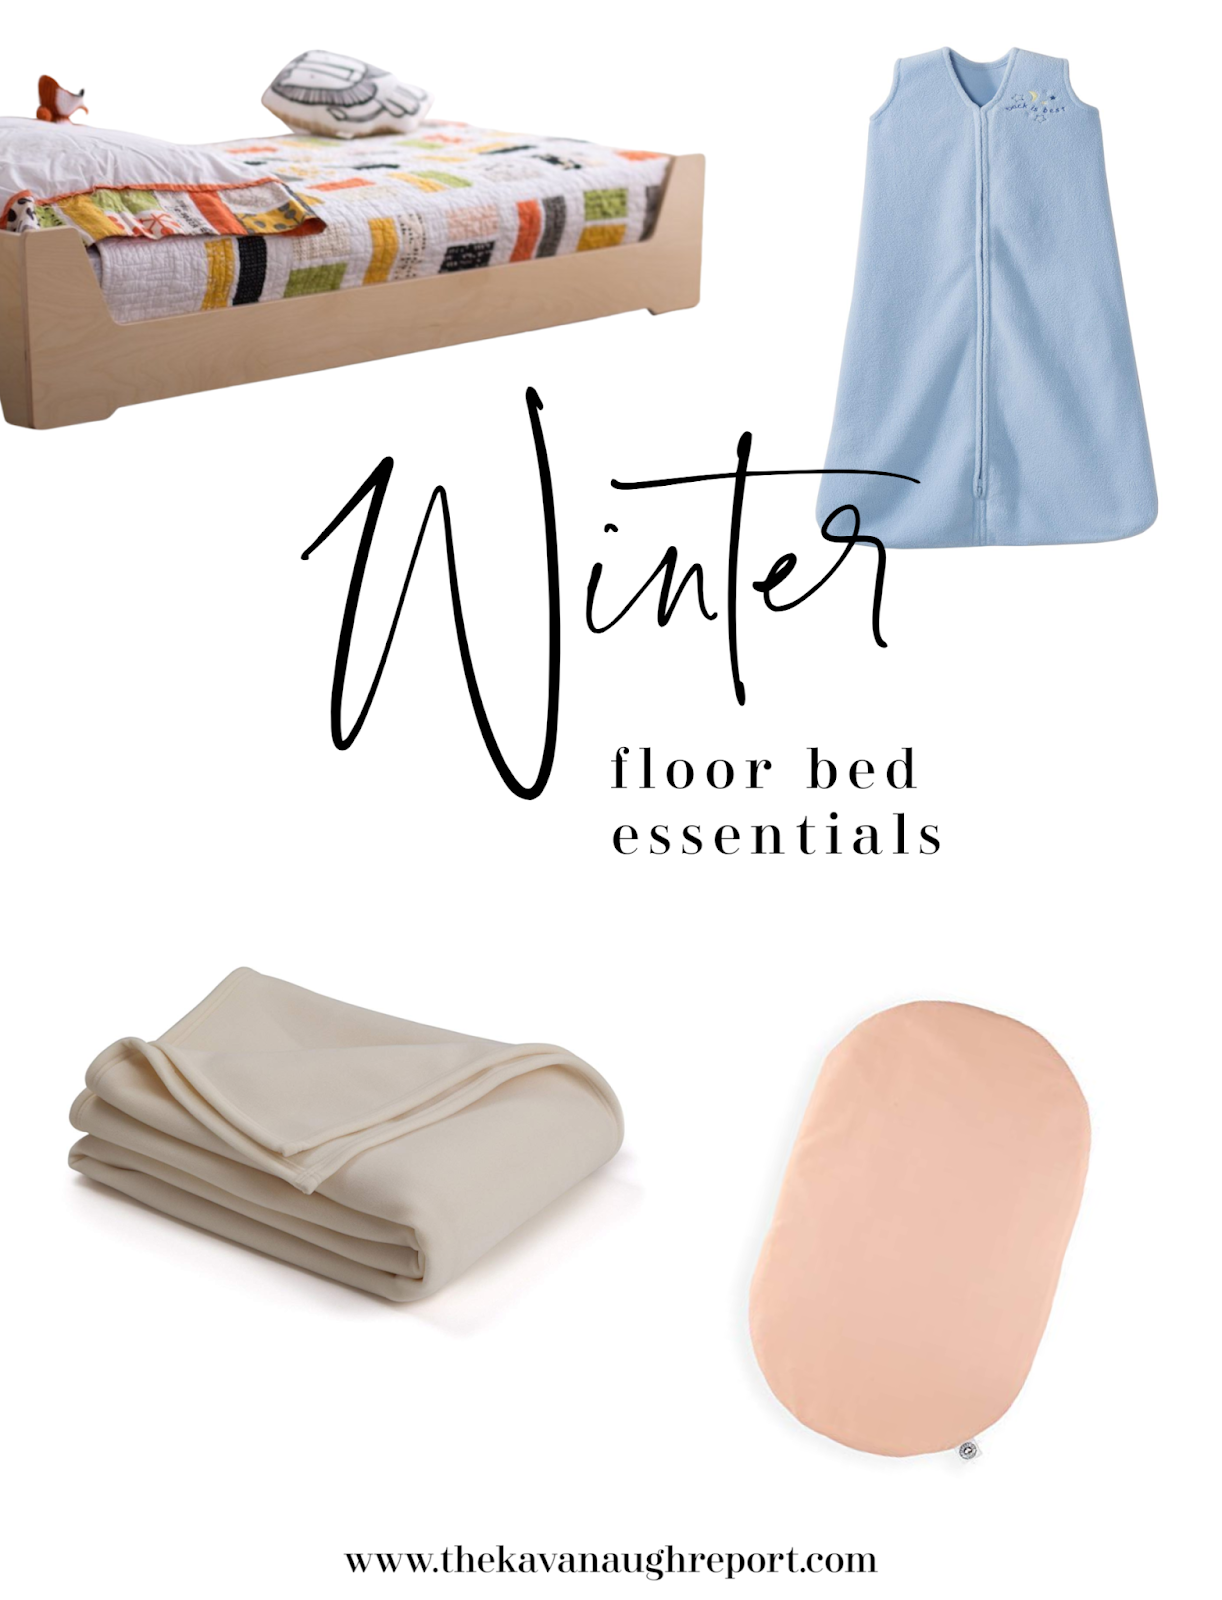 Montessori floor bed essentials for winter weather